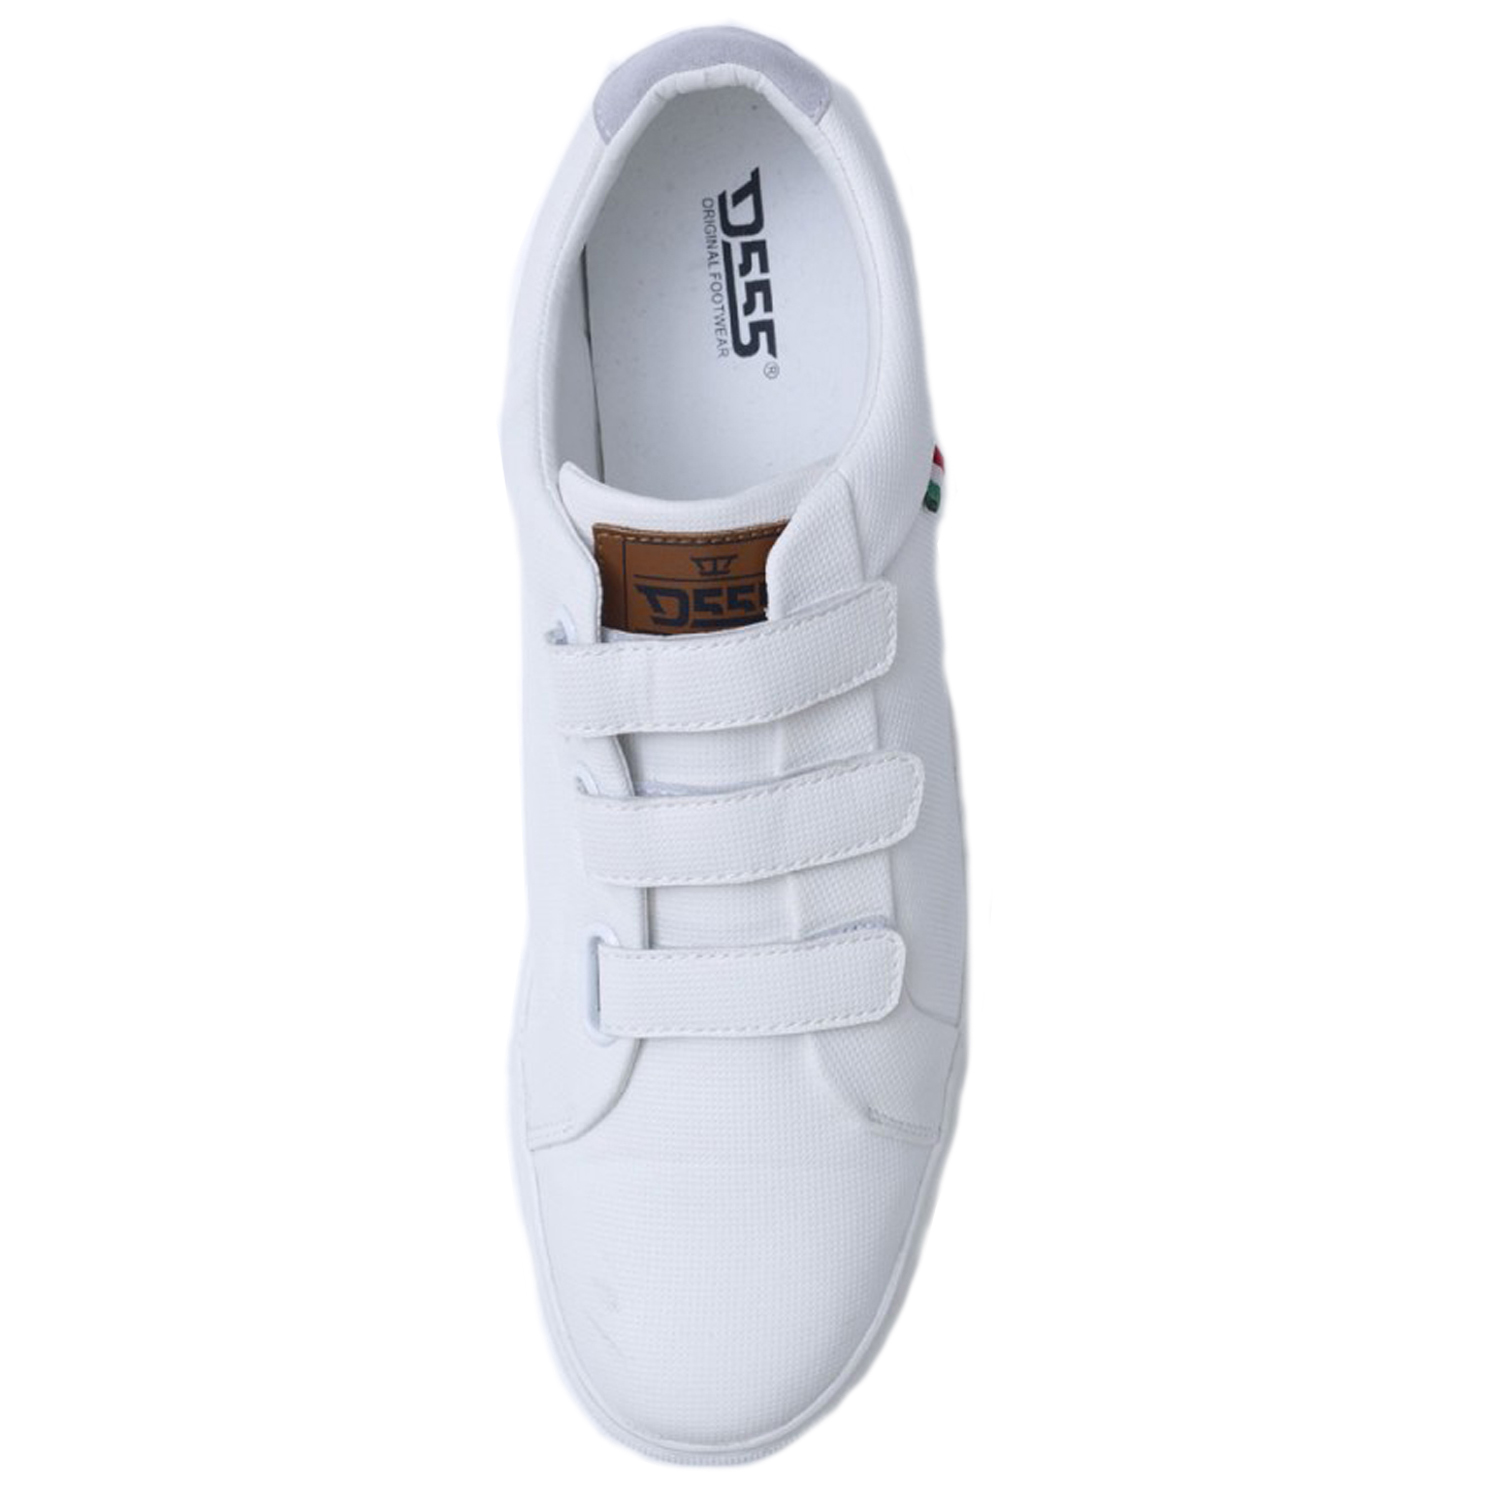 Duke D555 Mens Big King Size Delaware Shoes Touch Fasten PU Leather Trainers